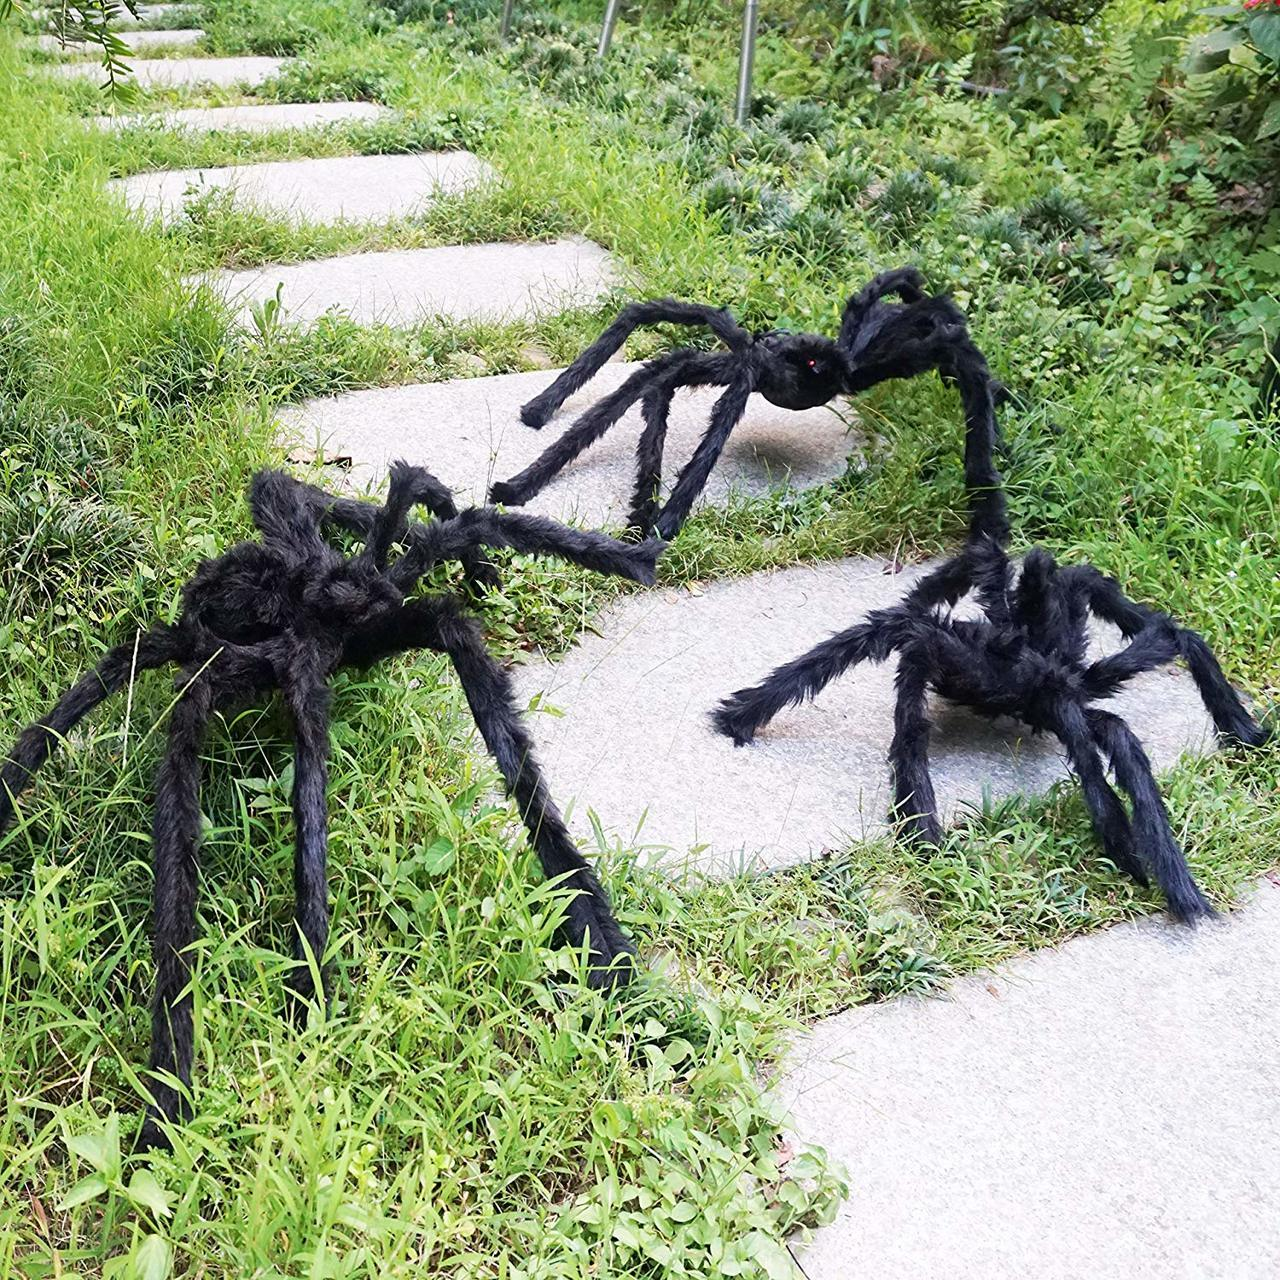 Three Realistic Looking Hairy Spiders with Giant Halloween Spider Web for Best Halloween Decorations Props